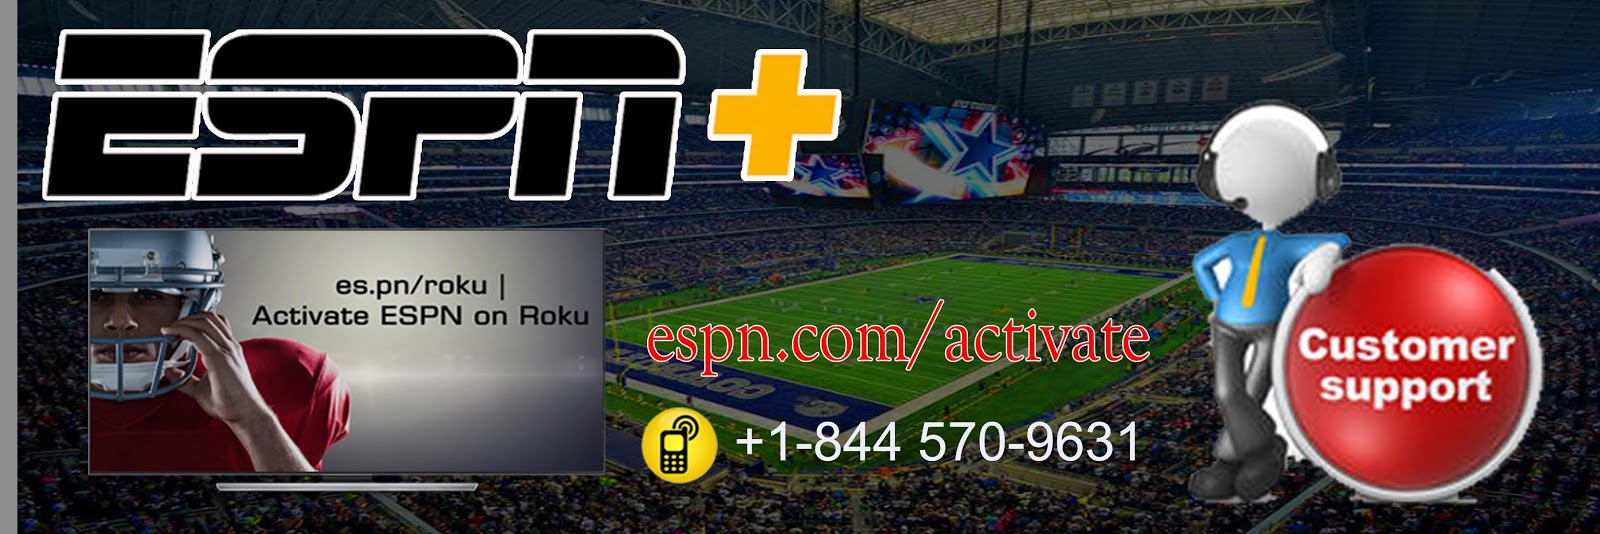 How To Activate Espn Channel On Roku | espn activate